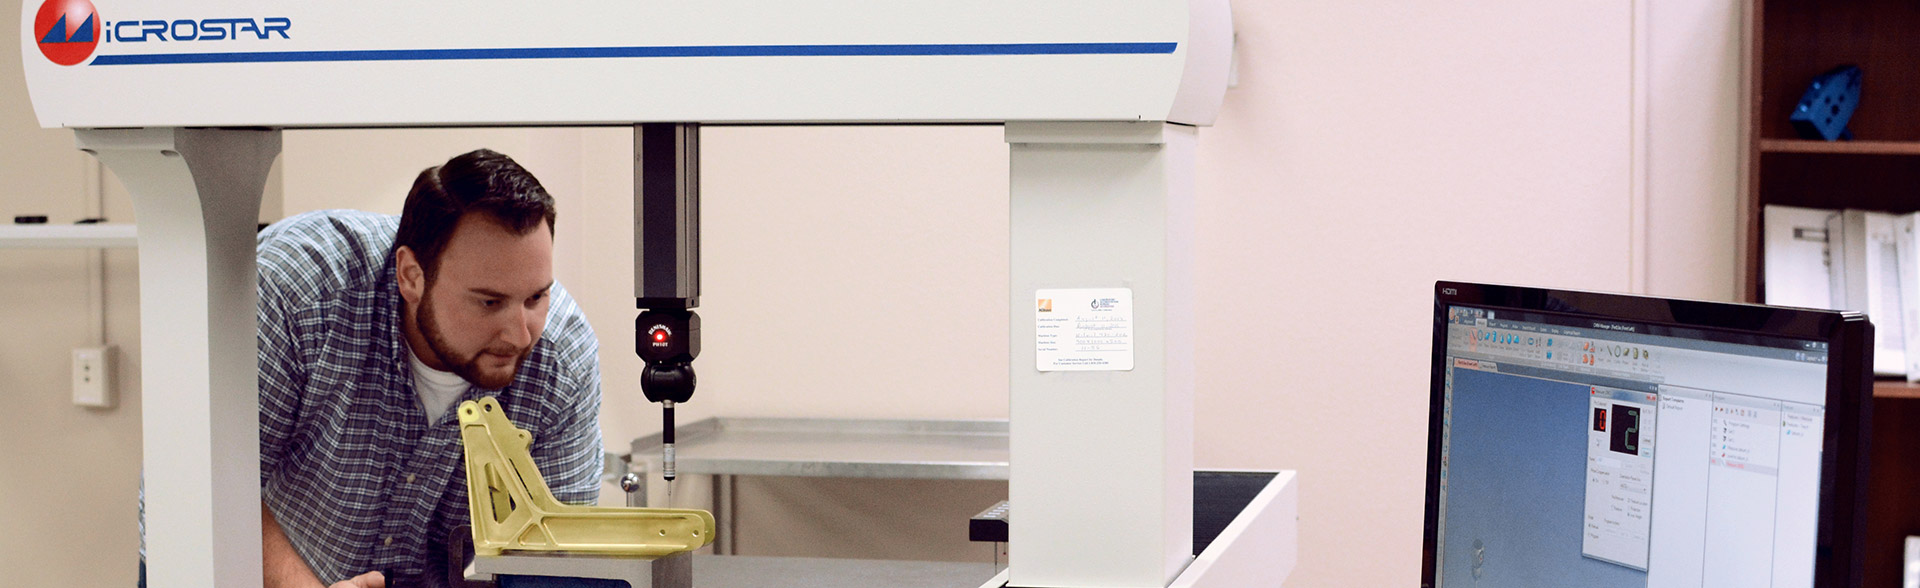 CMM to check Mechanical Dimensions against drawing requirements